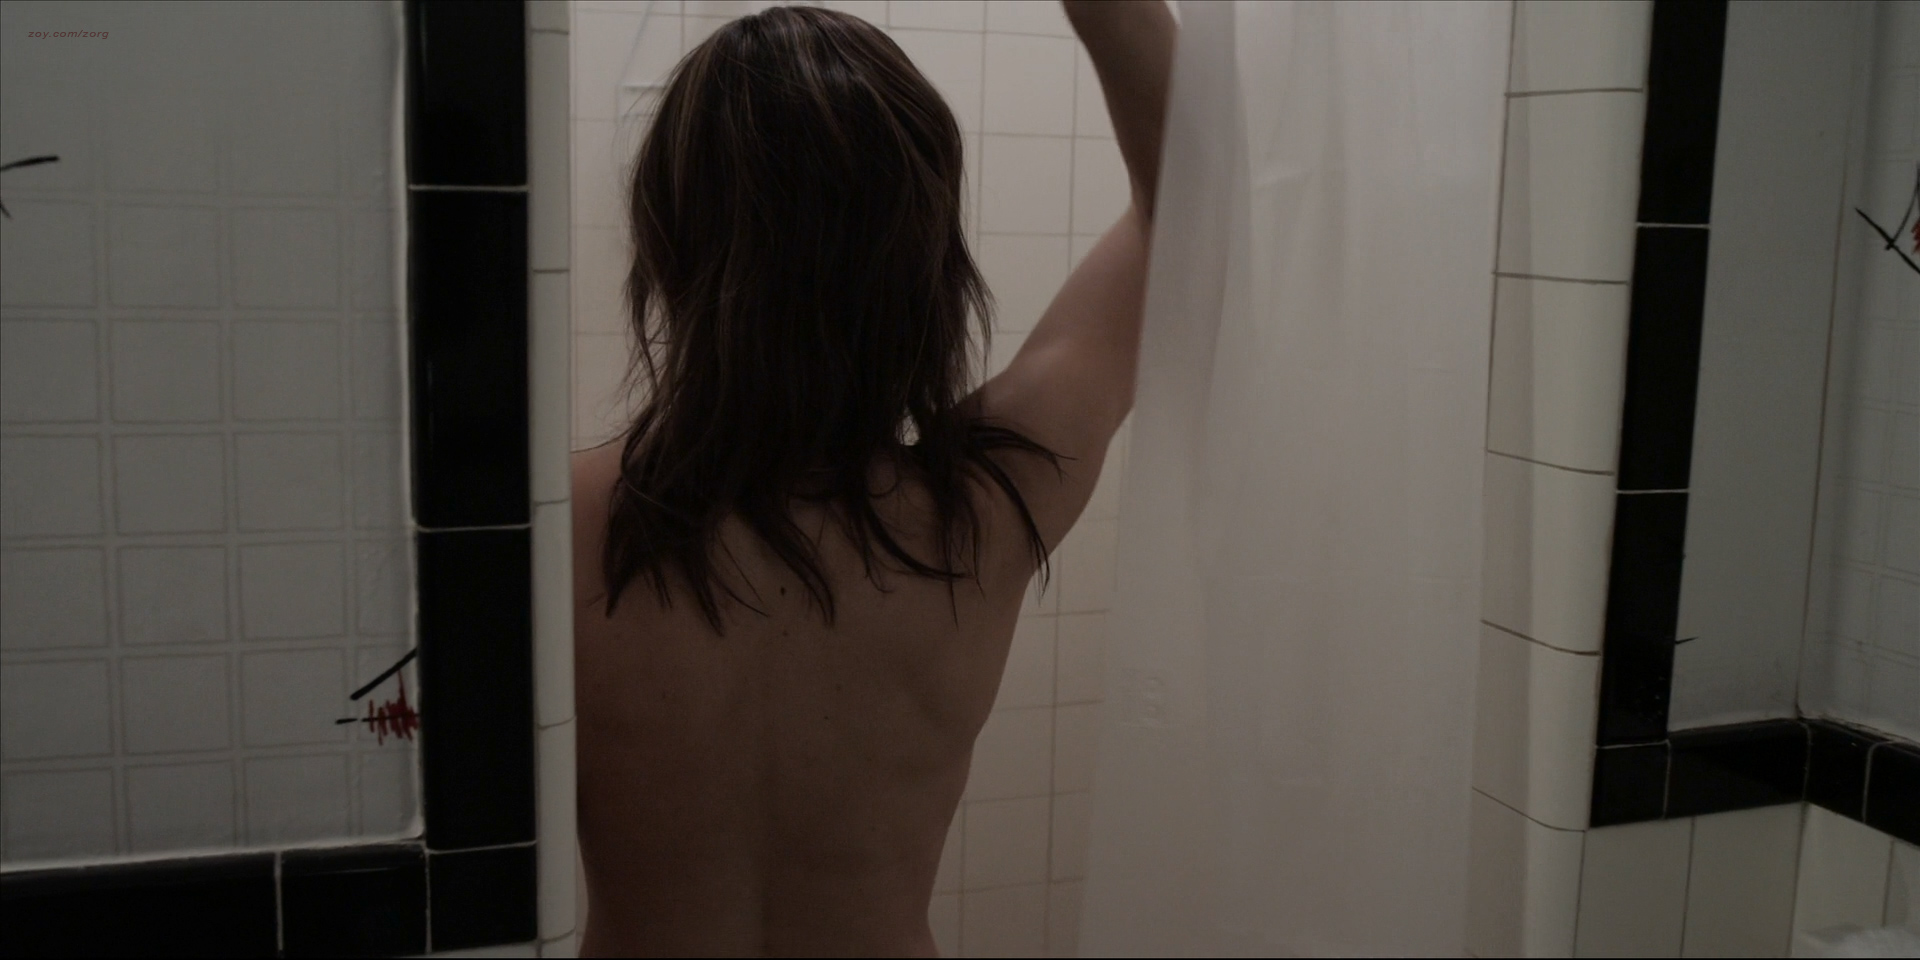 Victoria Johnstone nude butt boobs and Meredith Majors nude but covered – Lake Eerie (2016) HD 1080p (7)